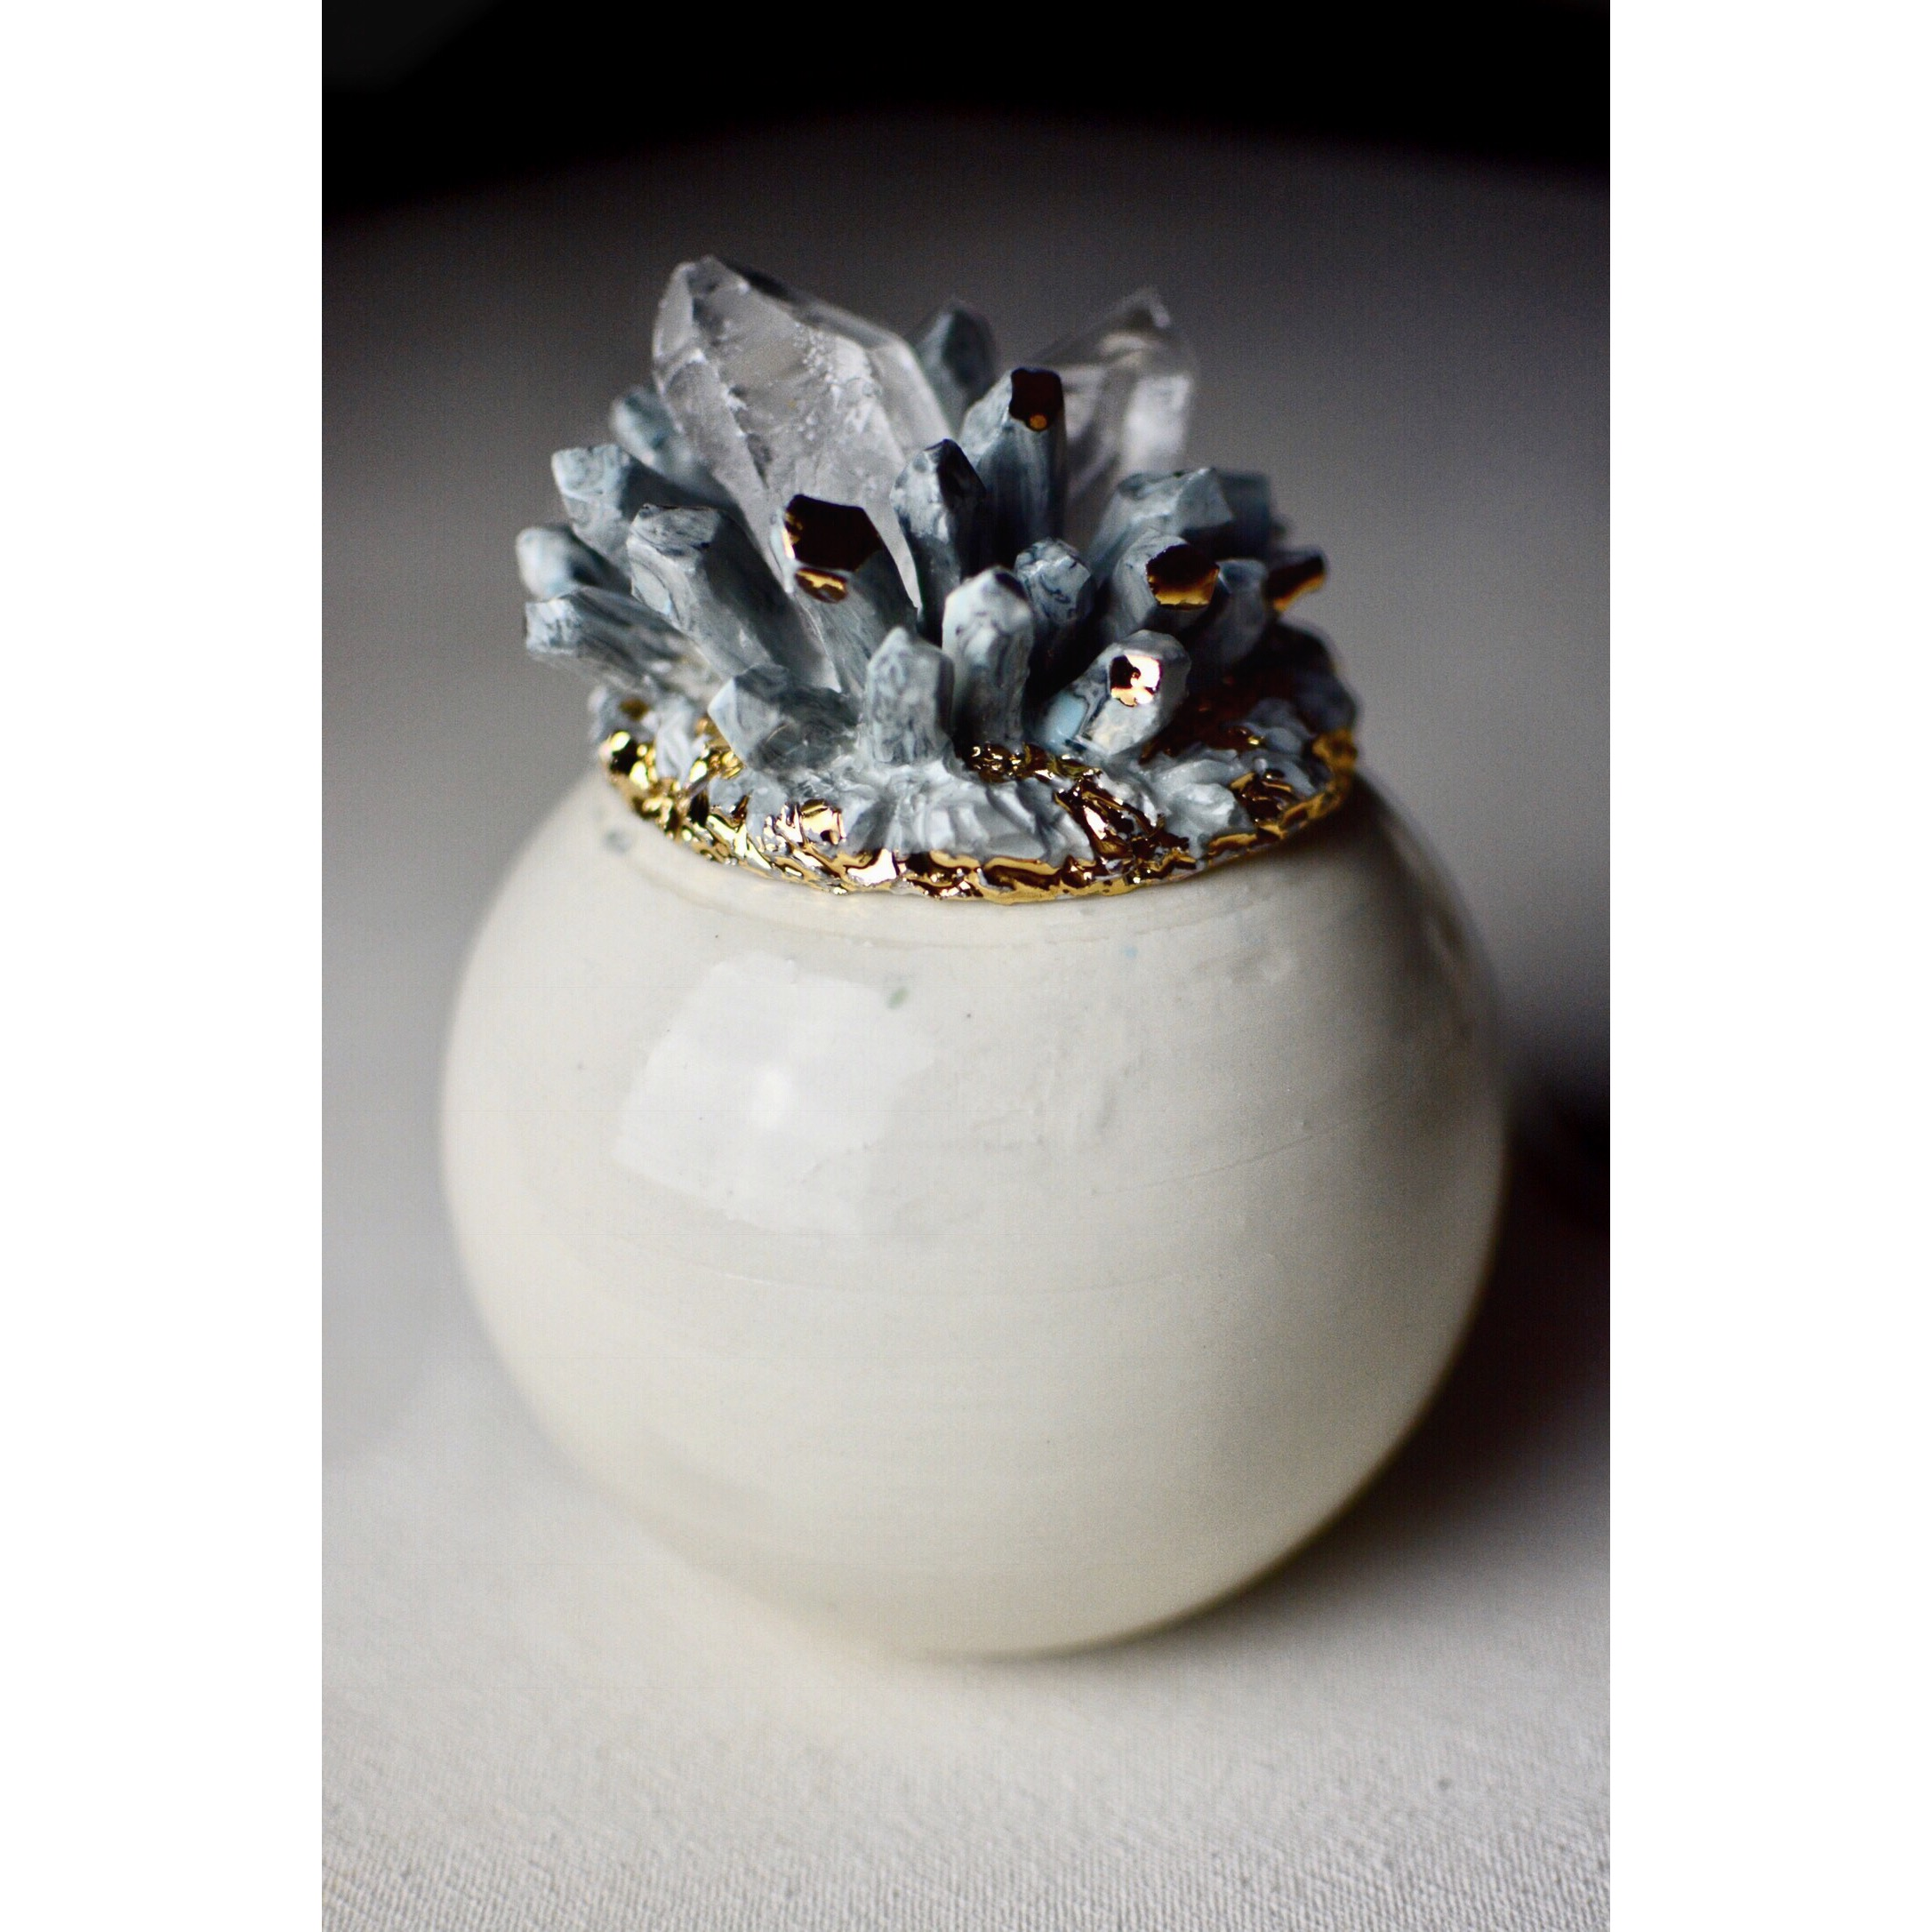 Raw quartz crystal lid jar